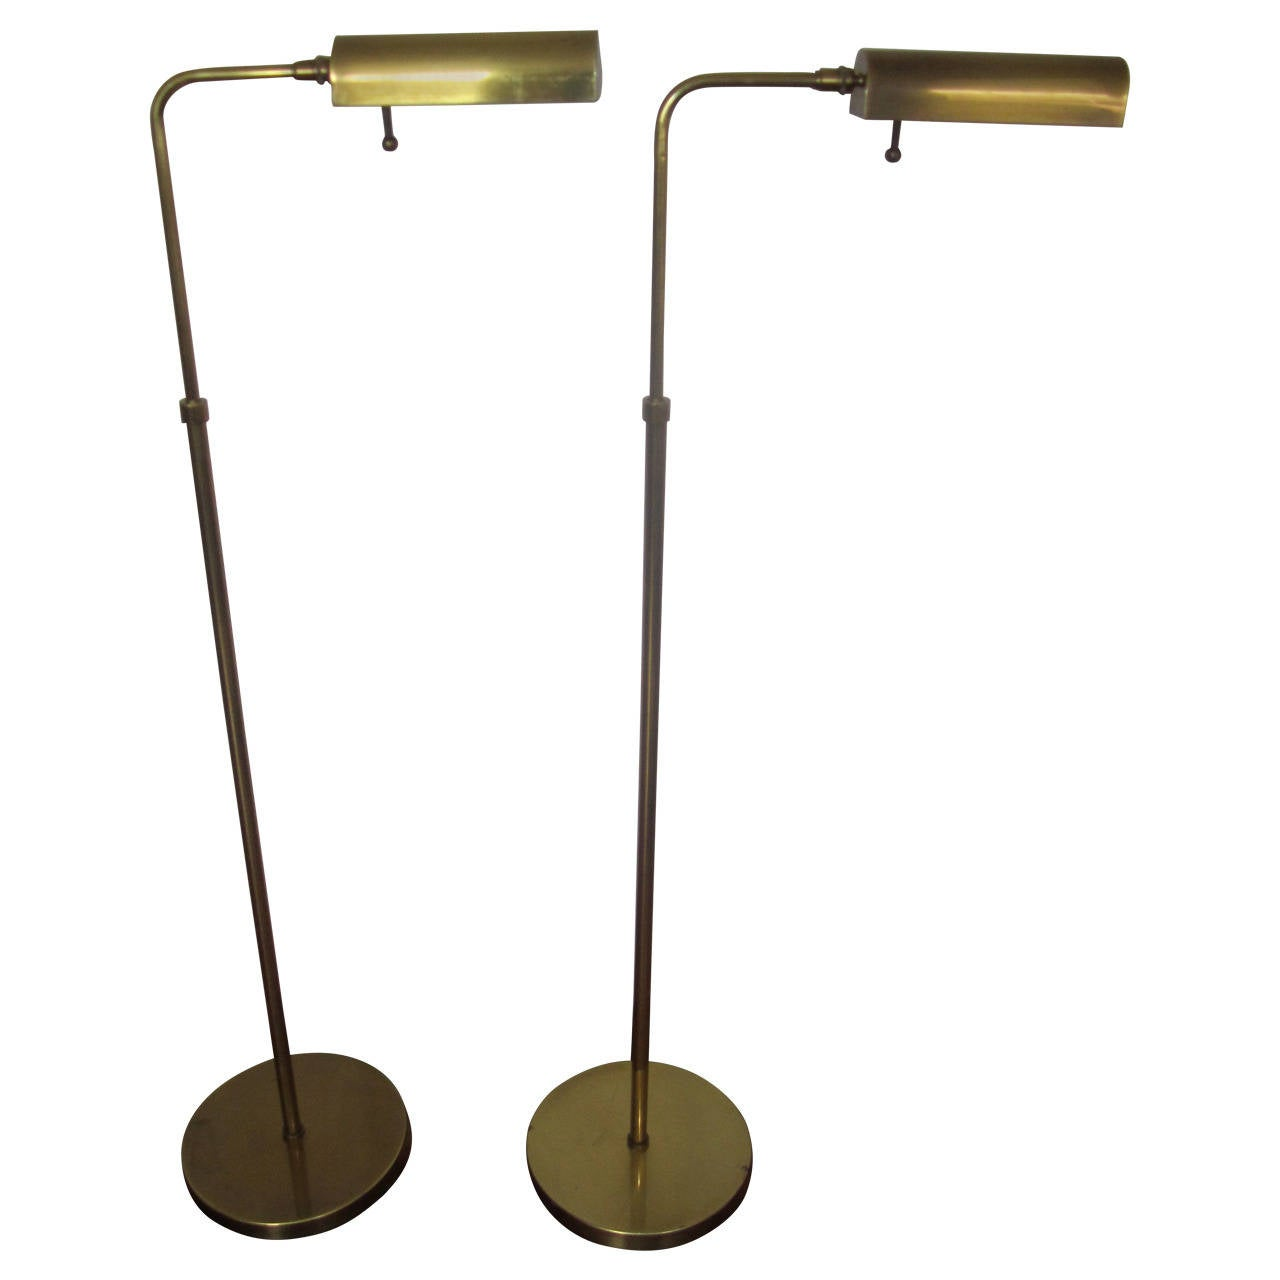 Brass Floor Lamp Mid Century: Mid-Century Pair Of Brass Adjustable Floor Lamps By